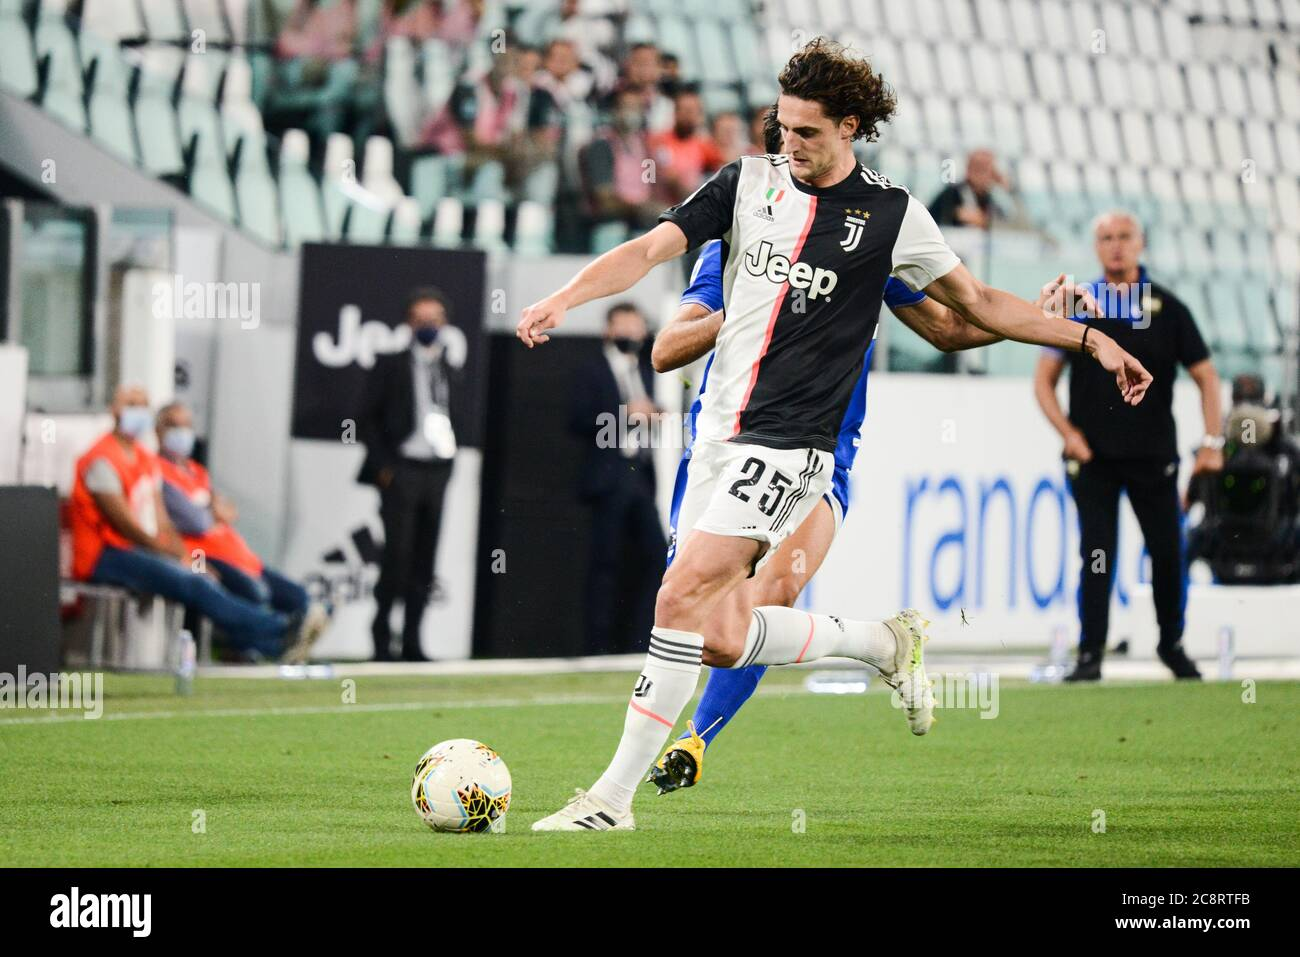 Turin Italy 26th July 2020 7 26 2020 Adrien Rabiot Of Juventus Fc In Action During